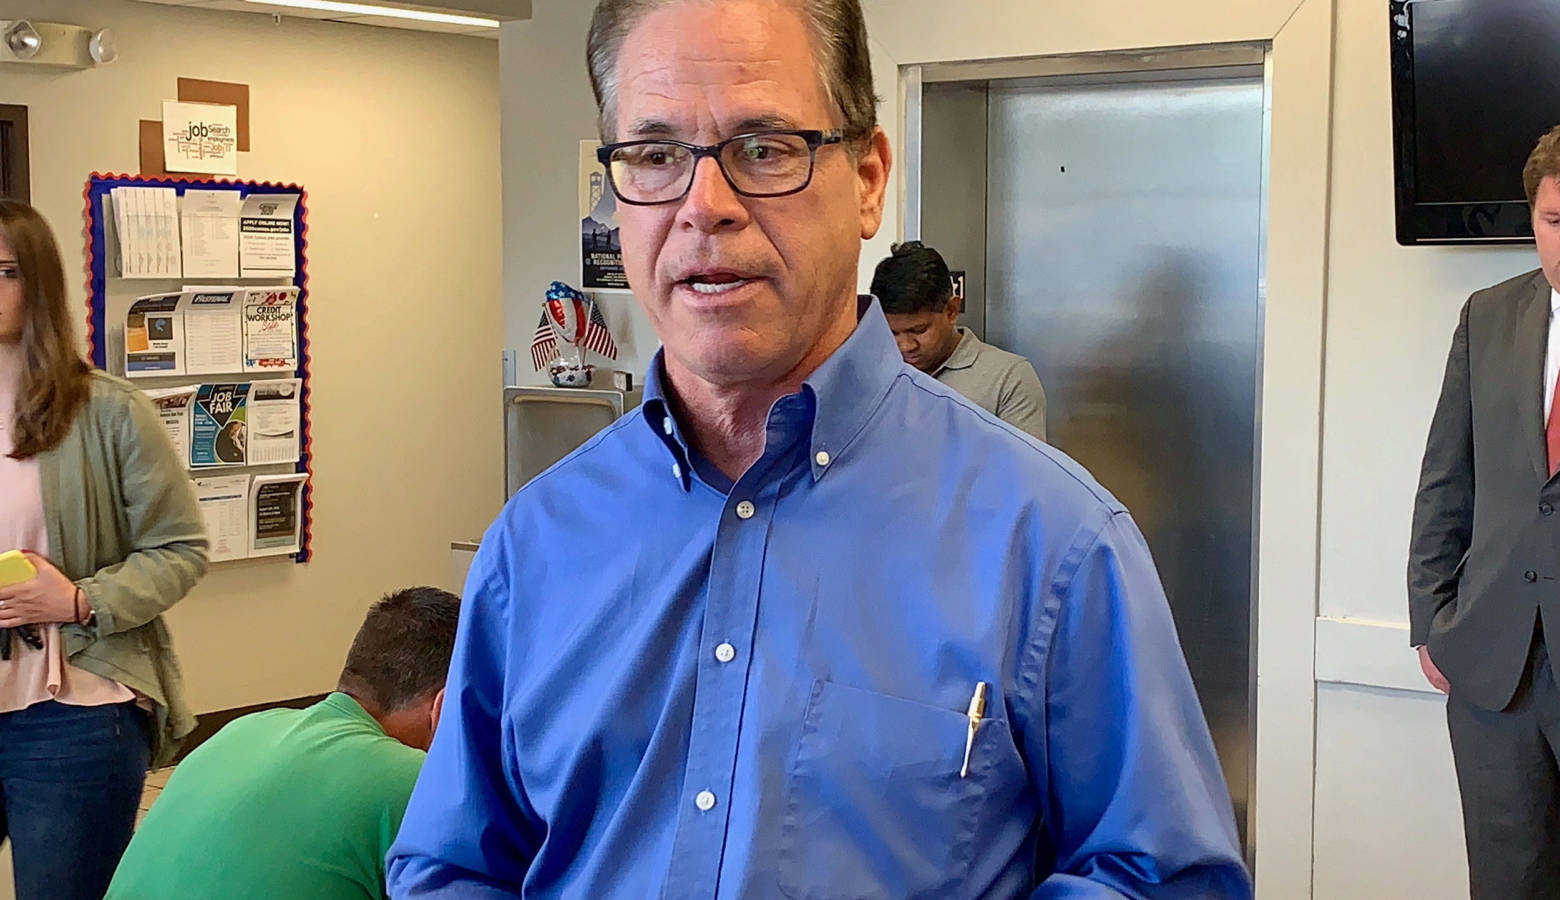 U.S. Sen. Mike Braun (R-Ind.) says he supports President Donald Trump's proposal to import some lower-cost prescription drugs from Canada. (Brandon Smith/IPB News)